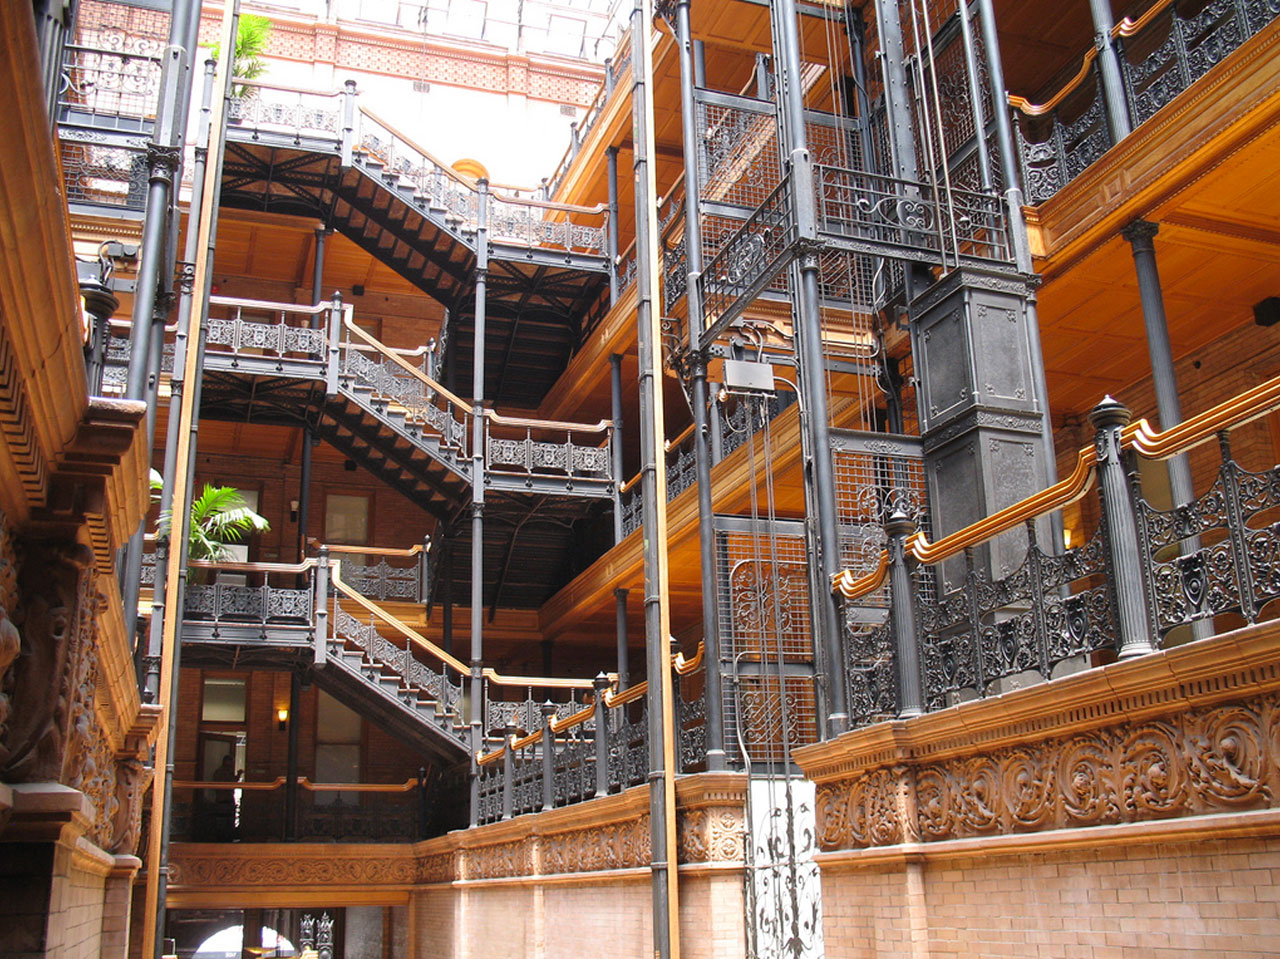 Interior shot of the Bradbury Building showing lattice work.